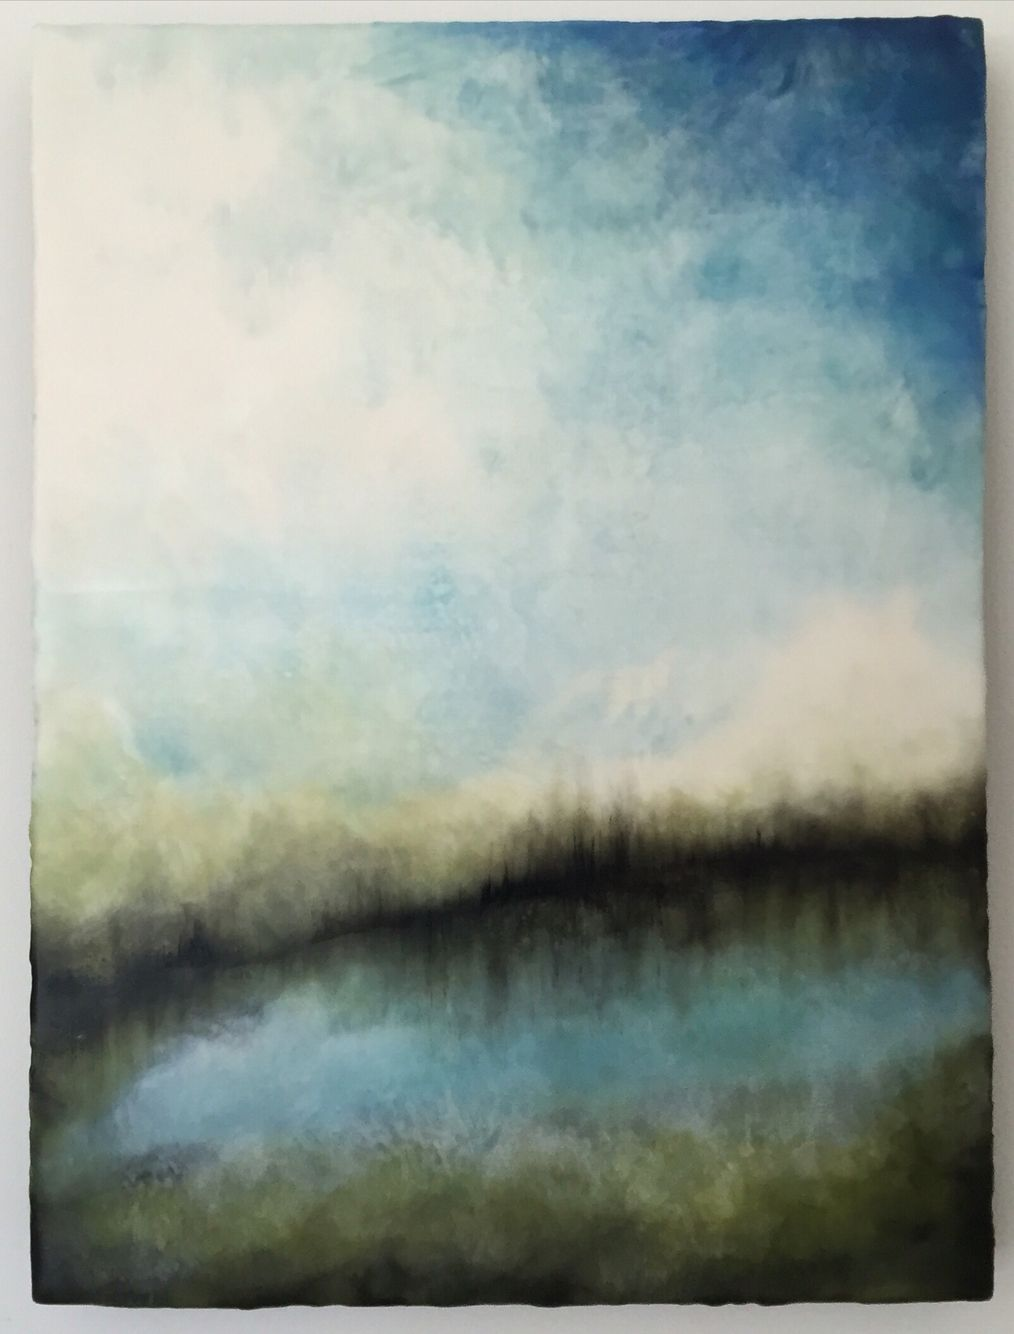 The Working Mother Original Encaustic Diptych 2 6x6 panels